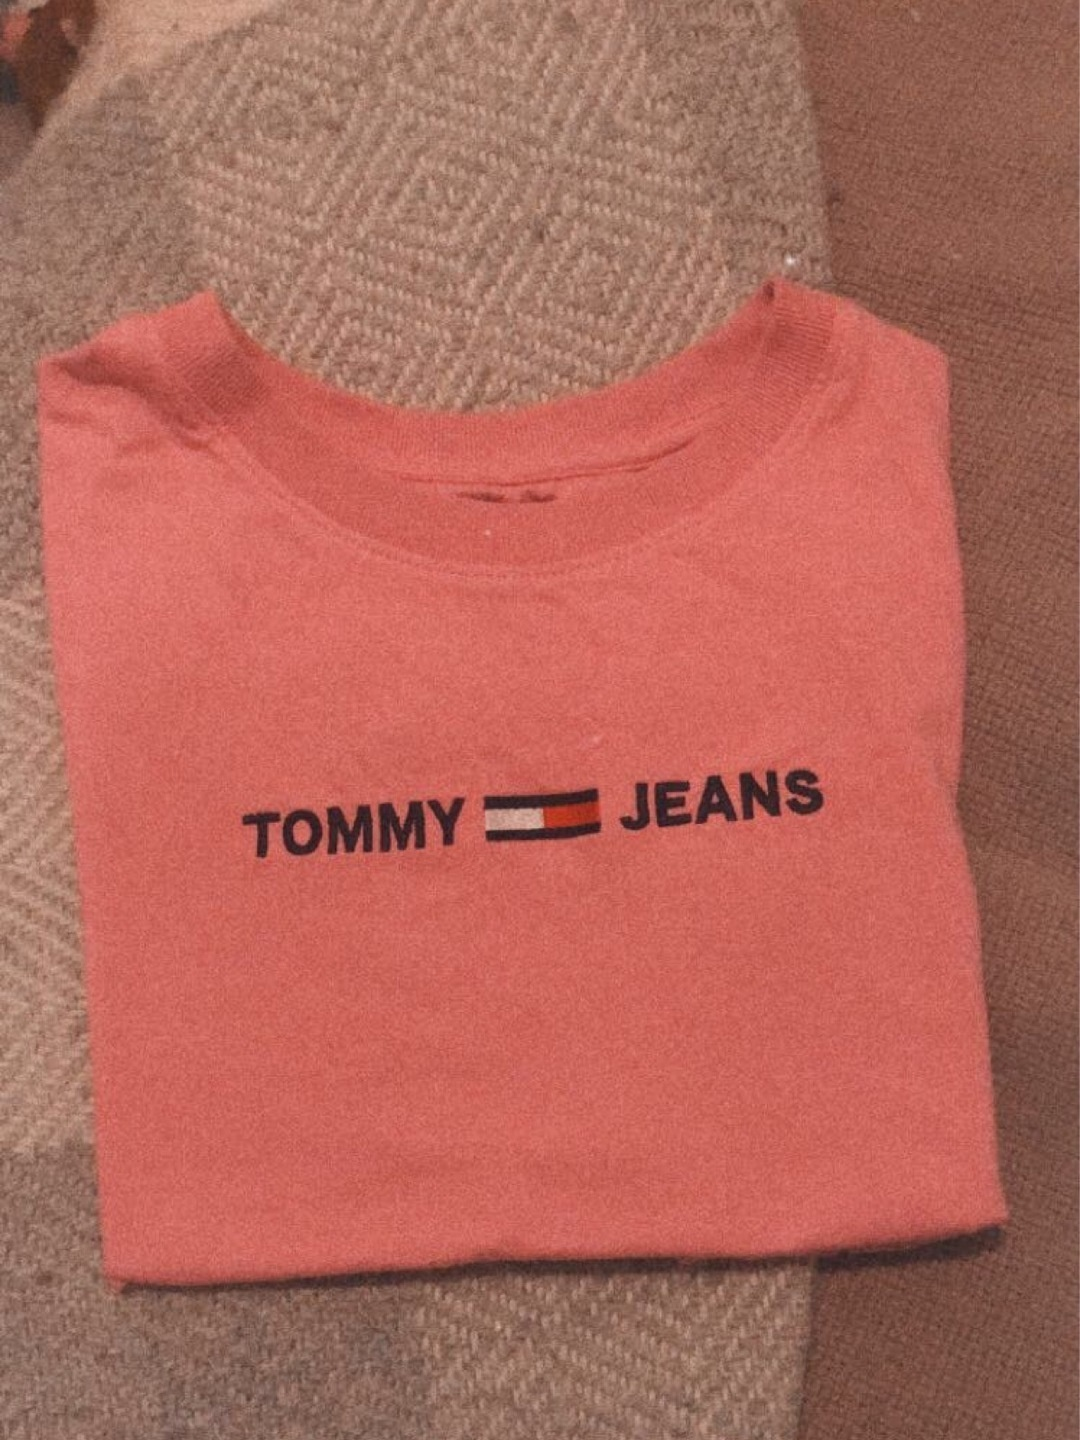 Damers toppe og t-shirts - TOMMY JEANS photo 1